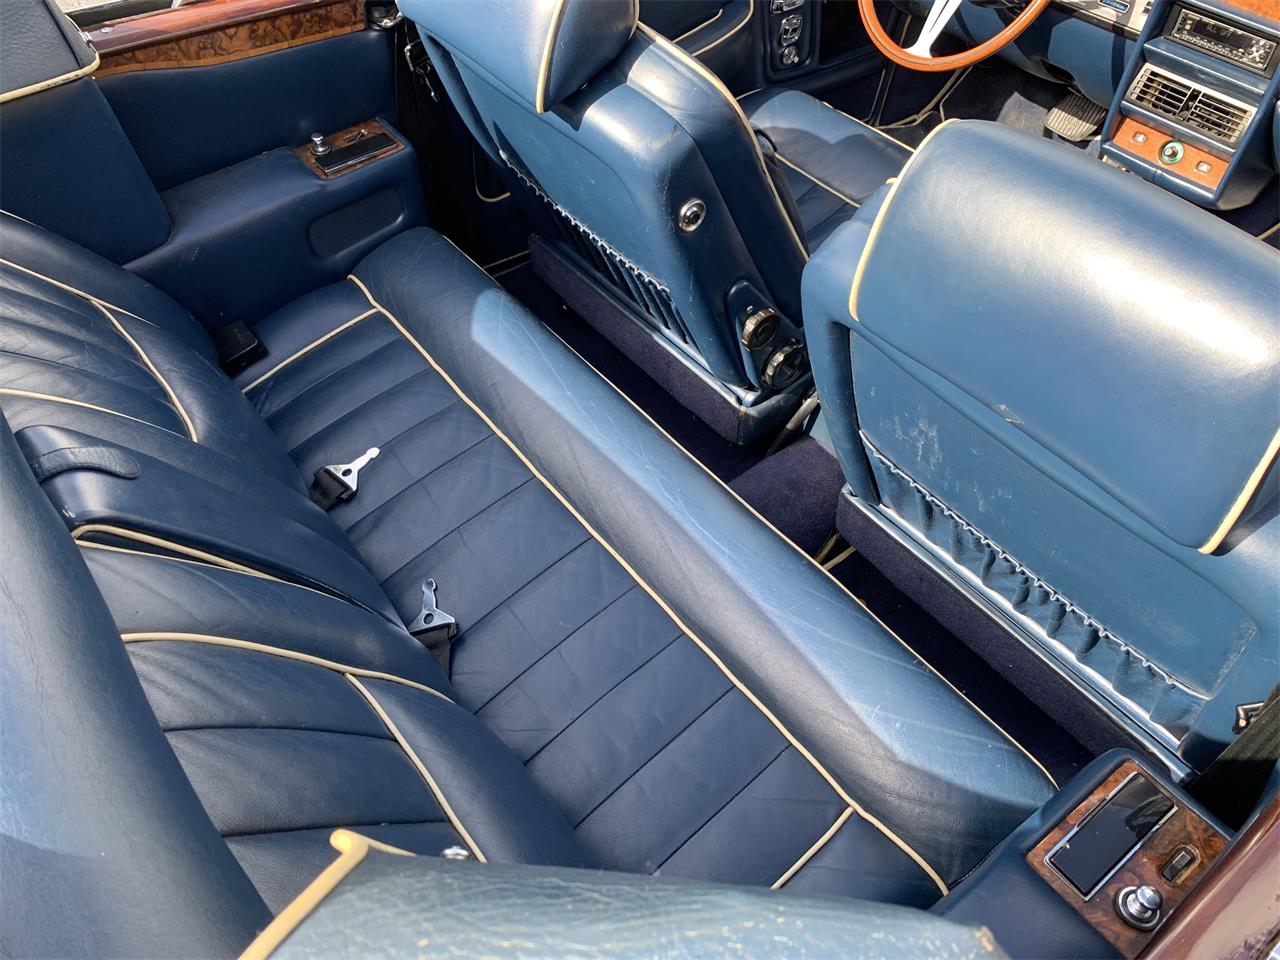 Large Picture of 1983 Rolls-Royce Corniche located in BOCA RATON Florida Offered by European Autobody, Inc. - PUCW